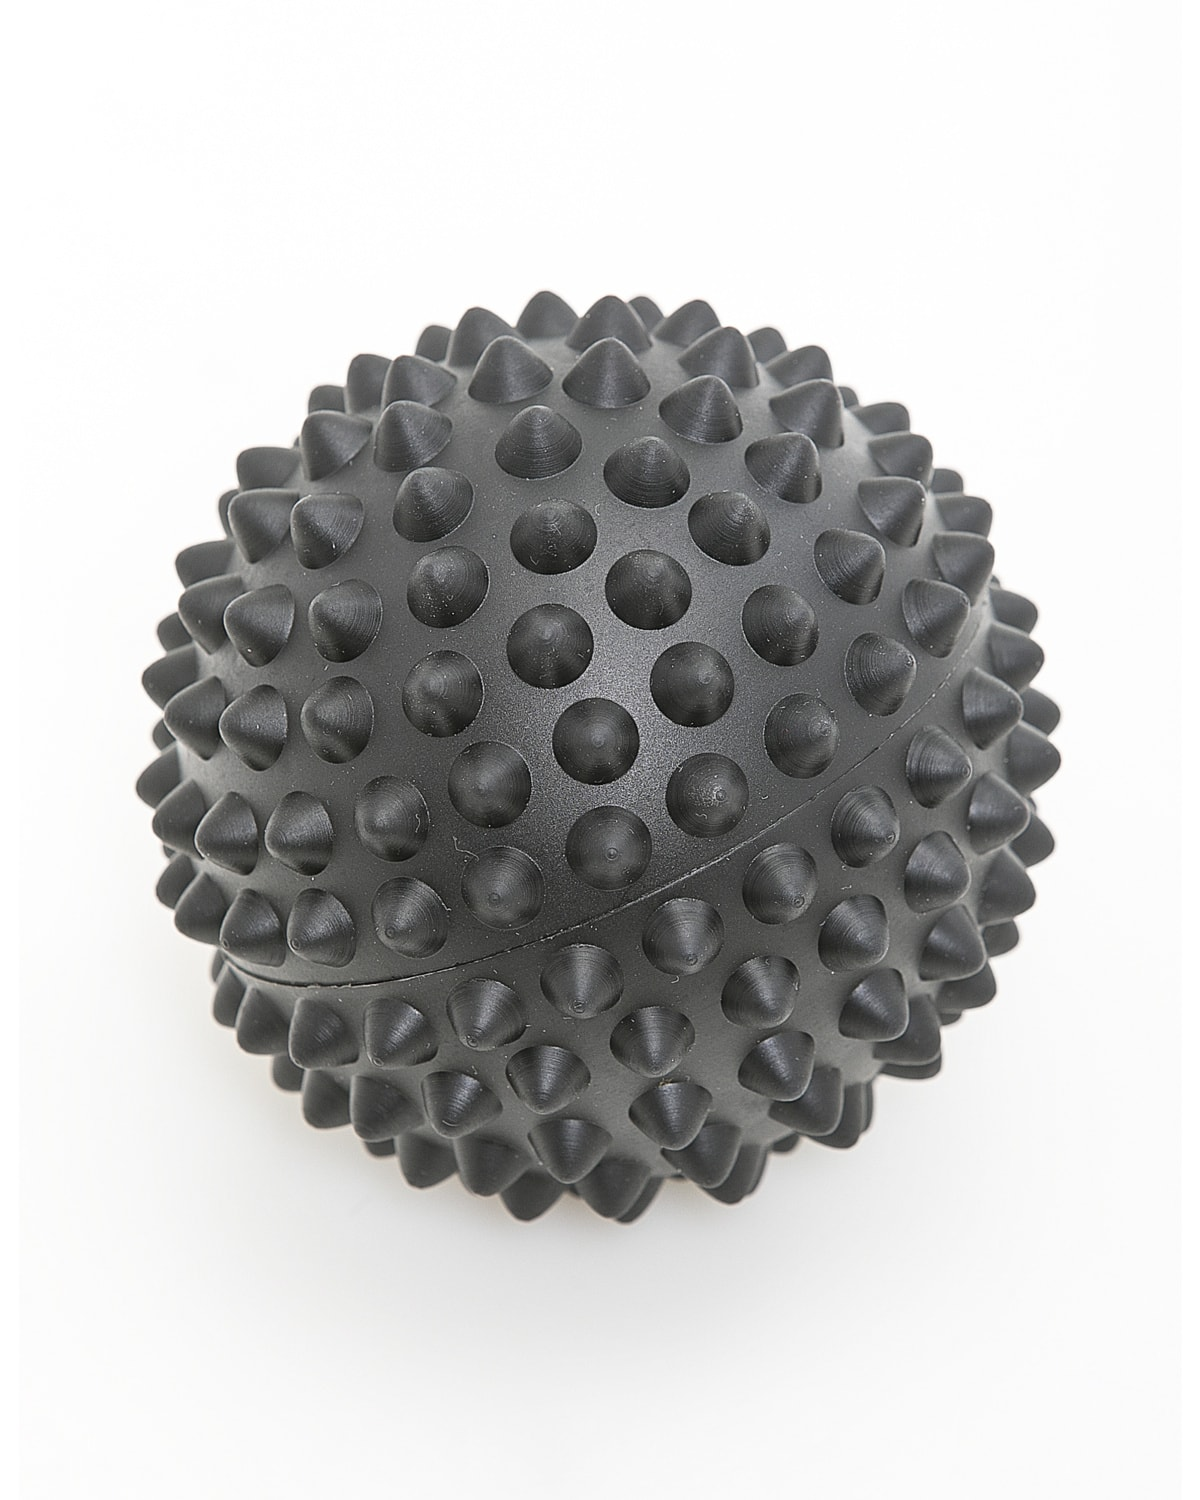 LEVITY Premium Fitness Spiky Trigger Ball 5